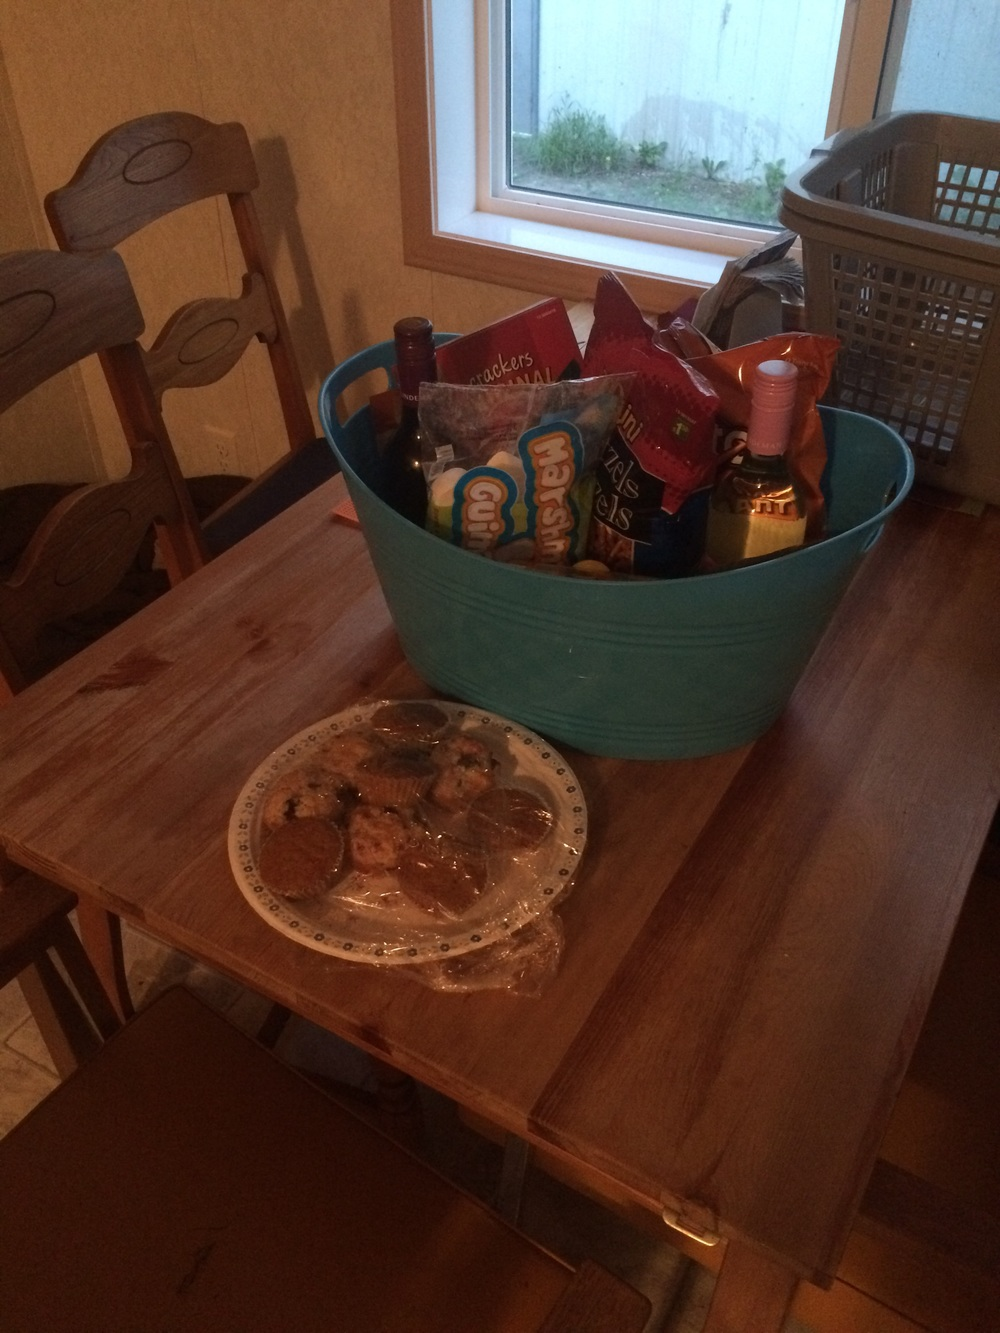 I loved this generous welcome basket that was left for us in our little trailer home!